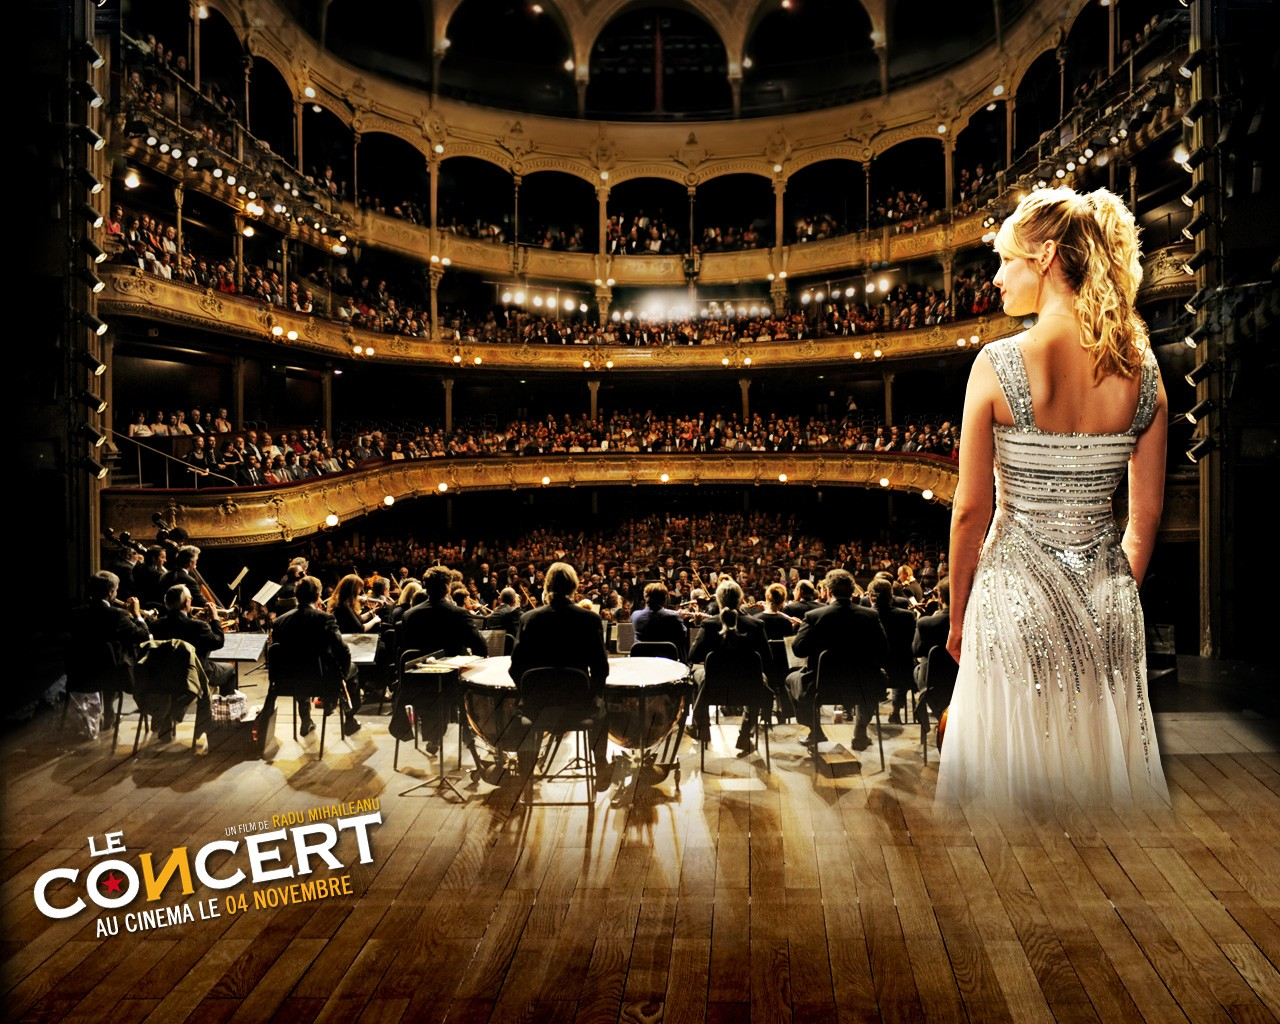 Wallpaper del film Il concerto - 5